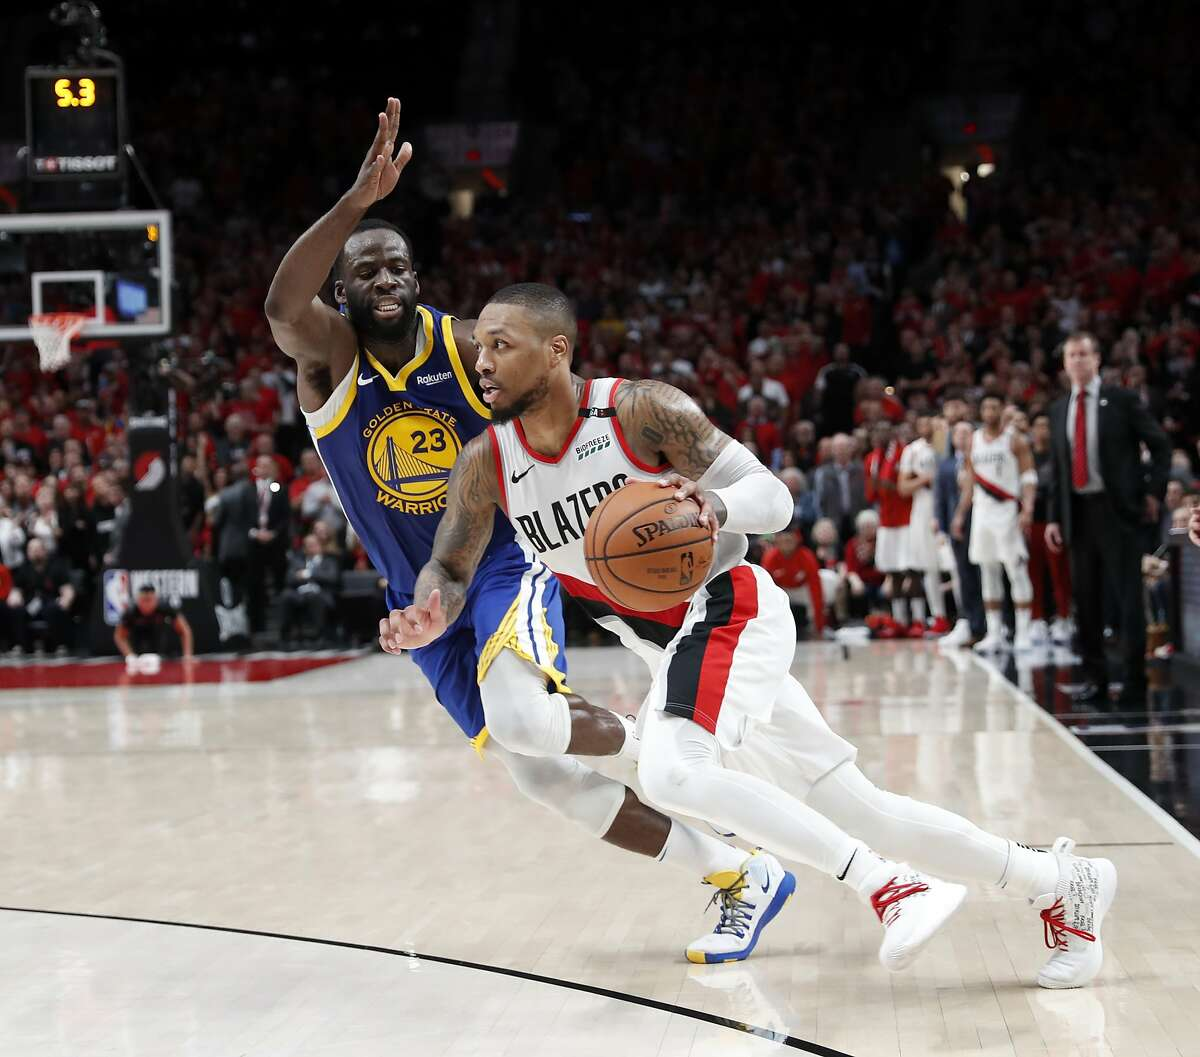 Golden State Warriors' Draymond Green guards Portland Trail Blazers' Damian Lillard in final seconds of Warriors' 119-117 overtime win in NBA Western Conference Finals' Game 4 at Moda Center in Portland, Oregon on Monday, May 20, 2019.